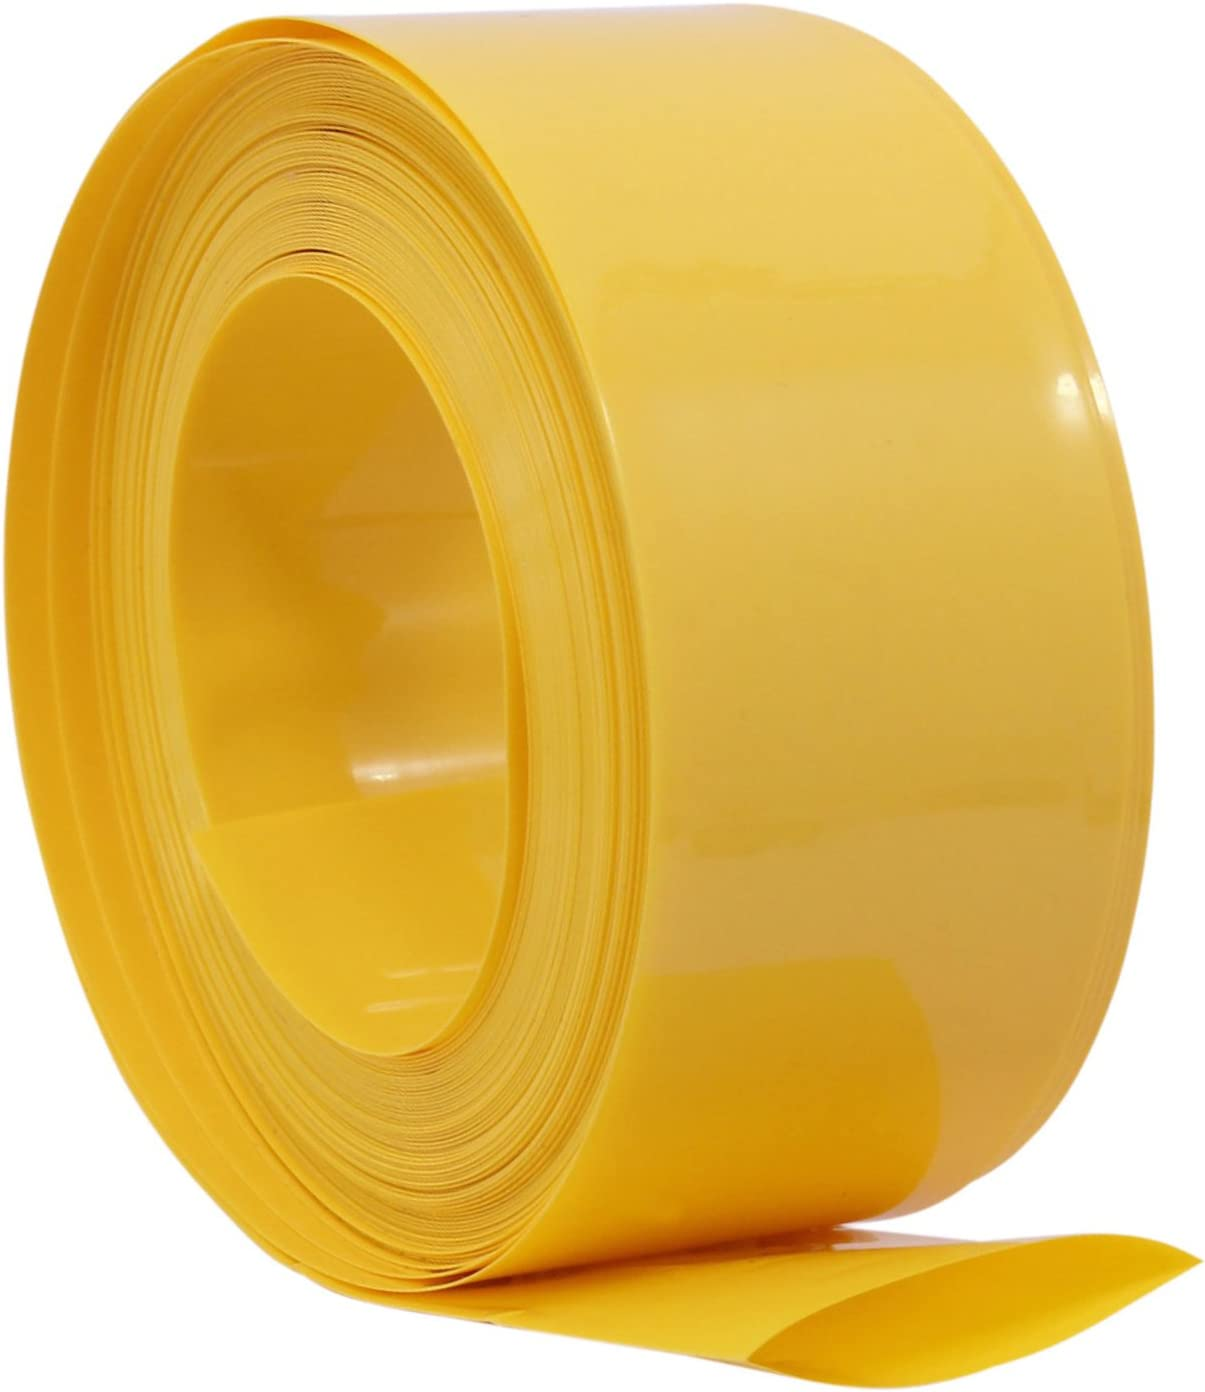 29.5MM10M Yellow AuSL Flat PVC Heat Shrink Tubing 29.5MM Width Battery Wrap for 1 x 18650 Battery